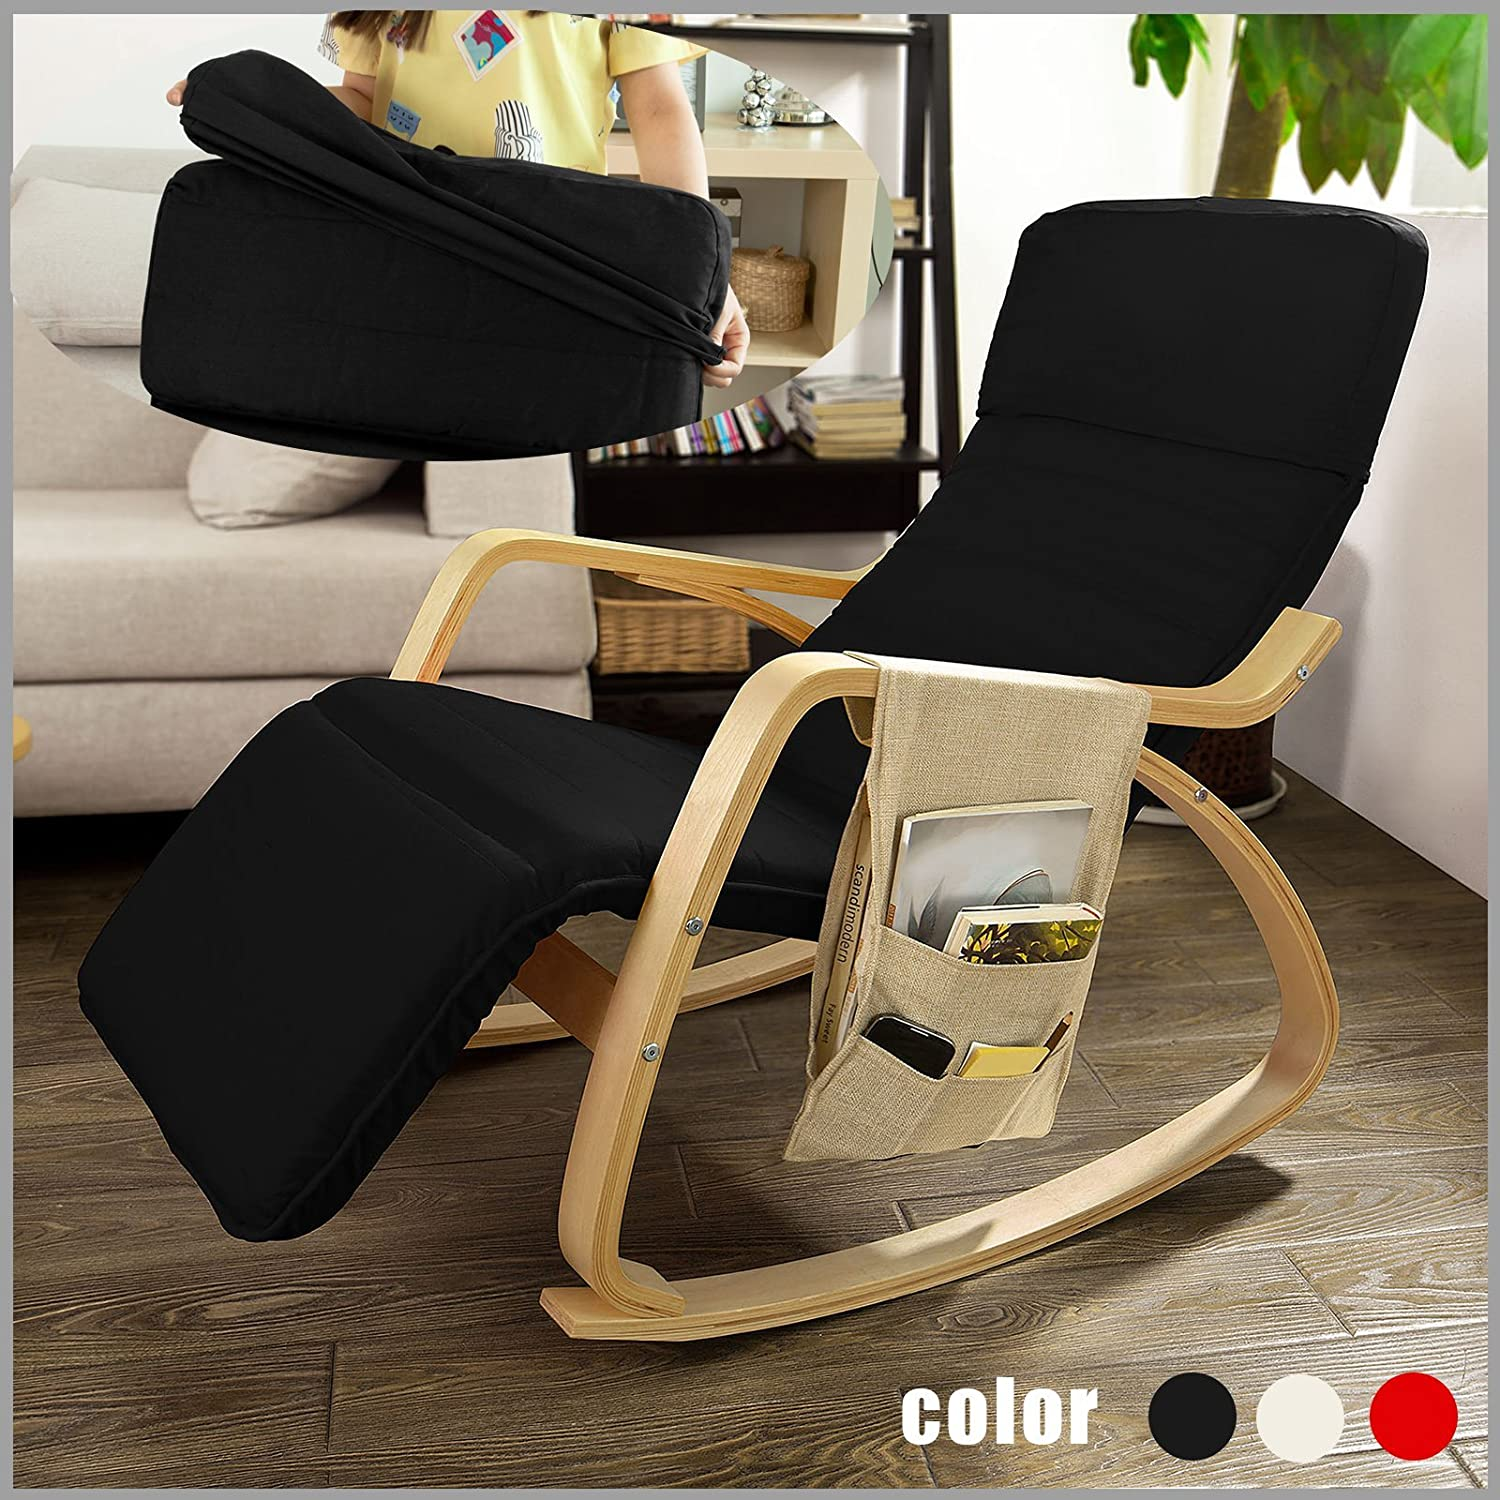 Phenomenal Best Reclining Chairs Recliners Reviews 2018 2019 On Gmtry Best Dining Table And Chair Ideas Images Gmtryco